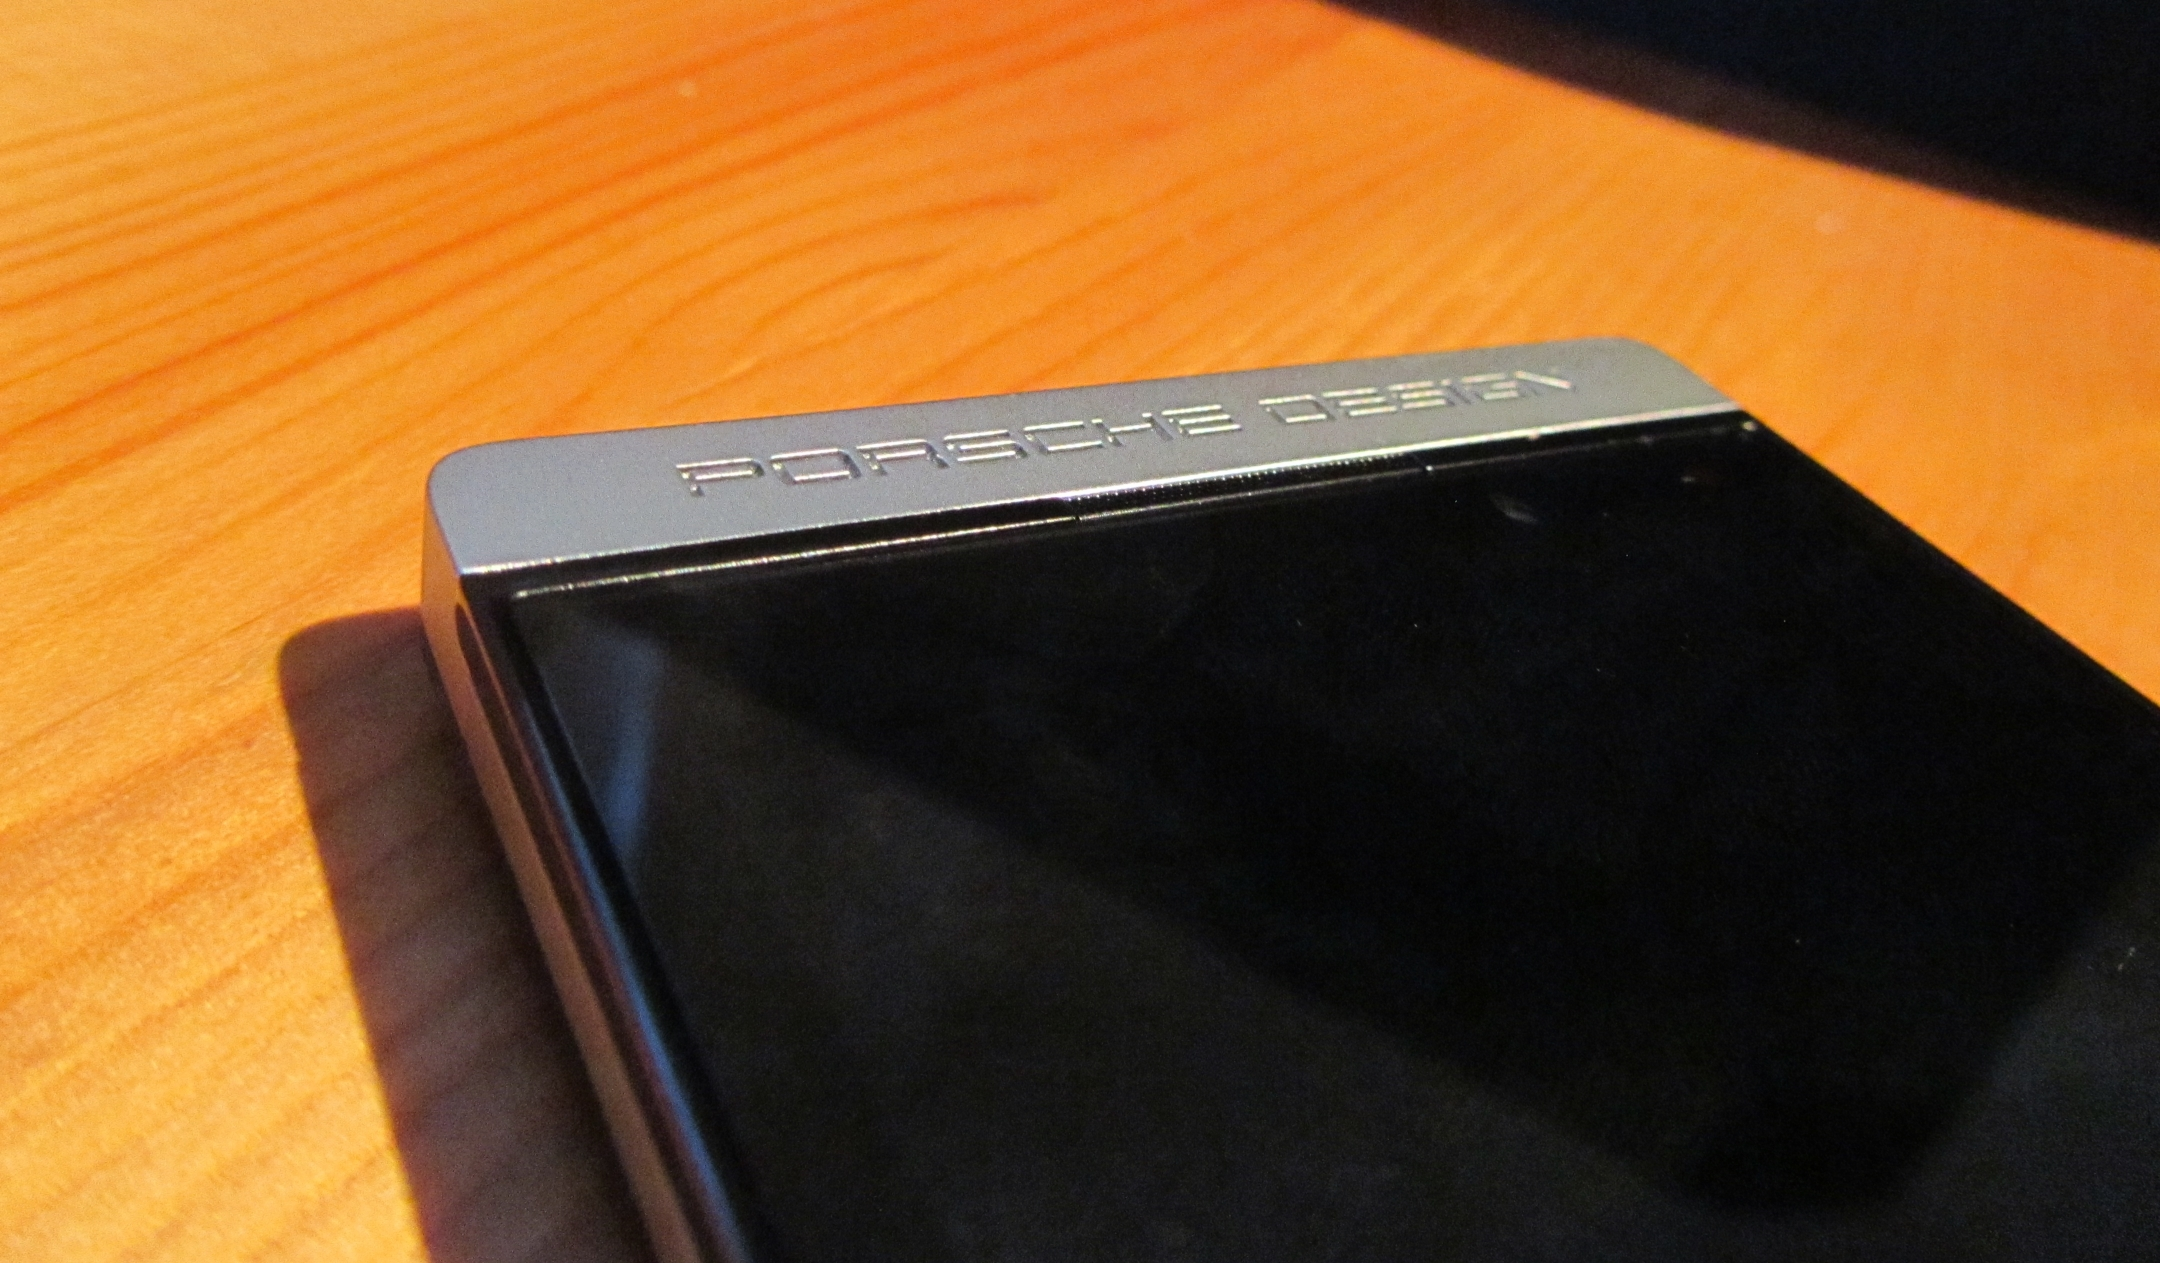 Hands-on with BlackBerry's $2,300 Porsche Design P'9982 smartphone: Where's the added value?